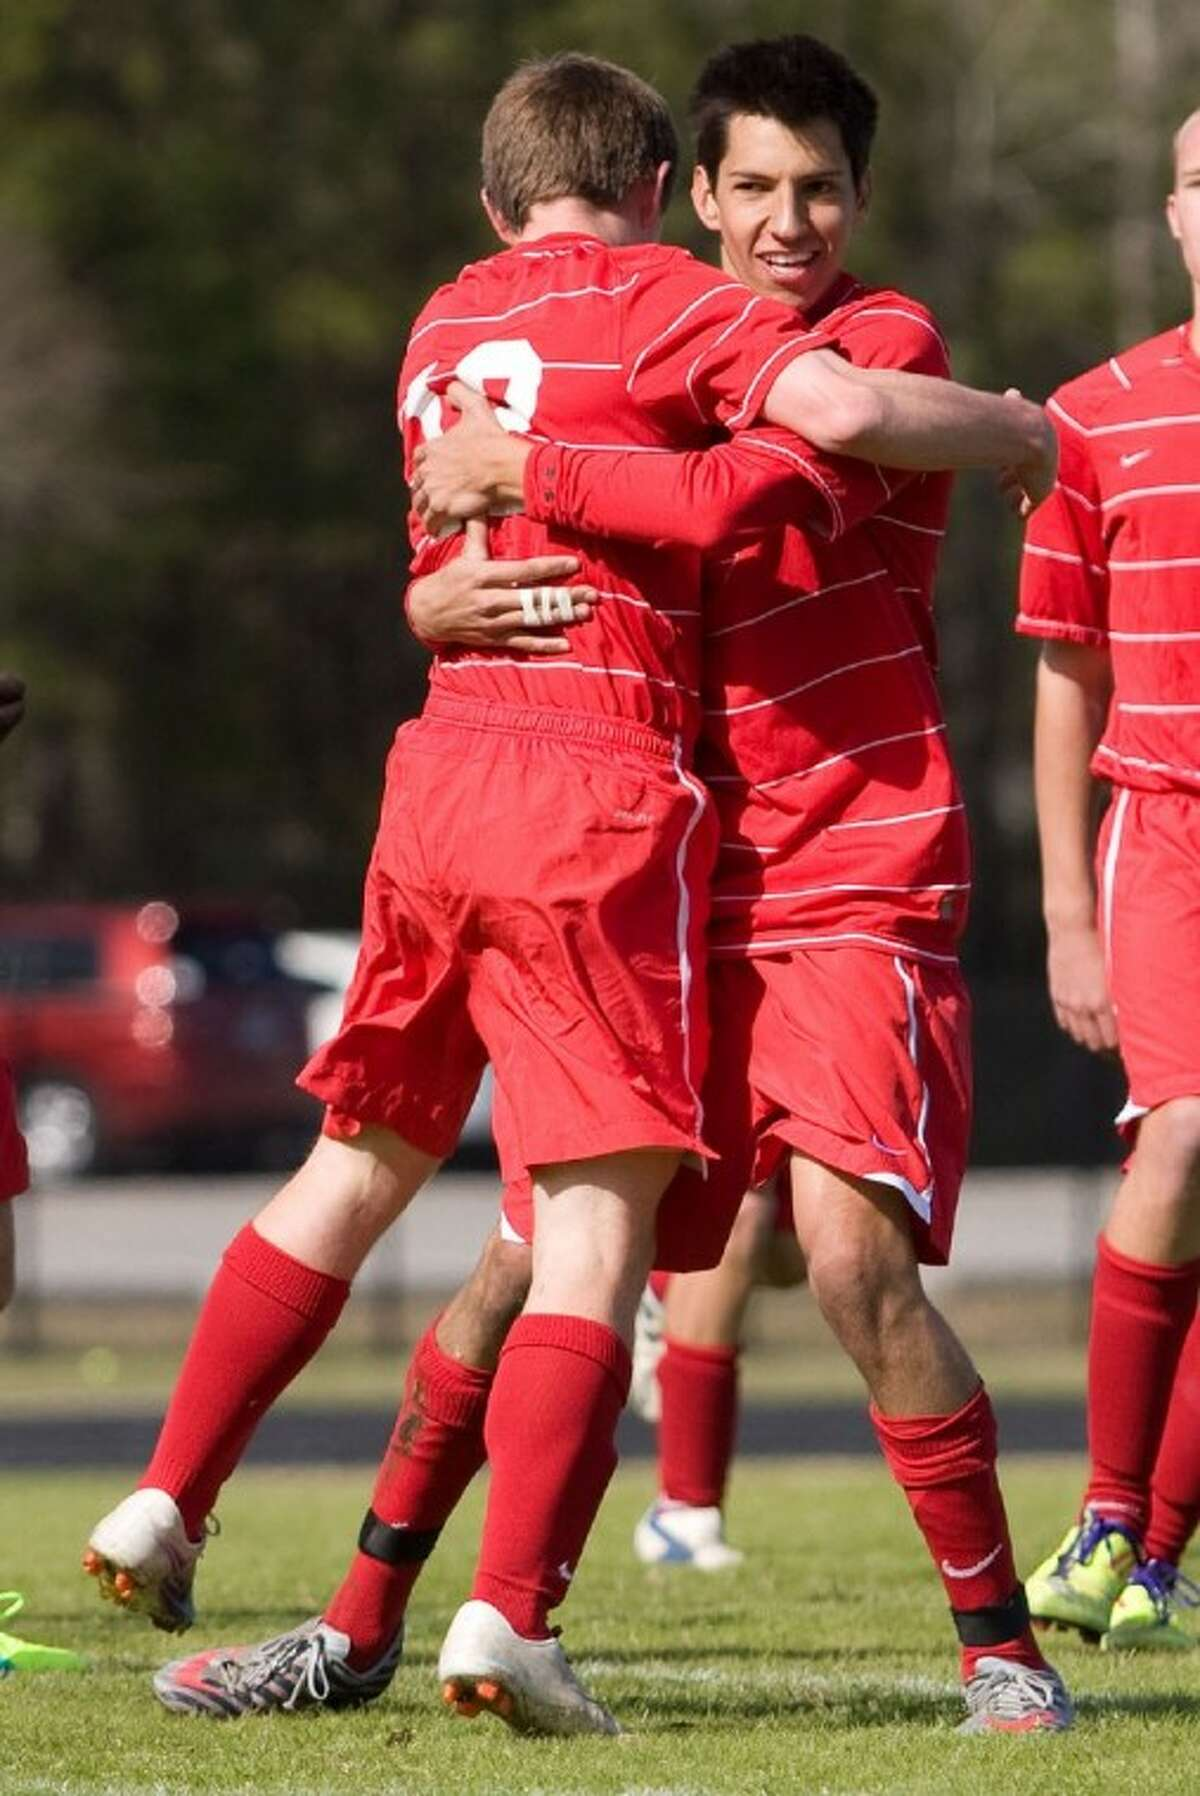 The Woodlands' Andrew Larson, left, and Santi Navas celebrate after Navas' goal early in the first half against Spring on Thursday at the Kilt Cup at The Woodlands High School.